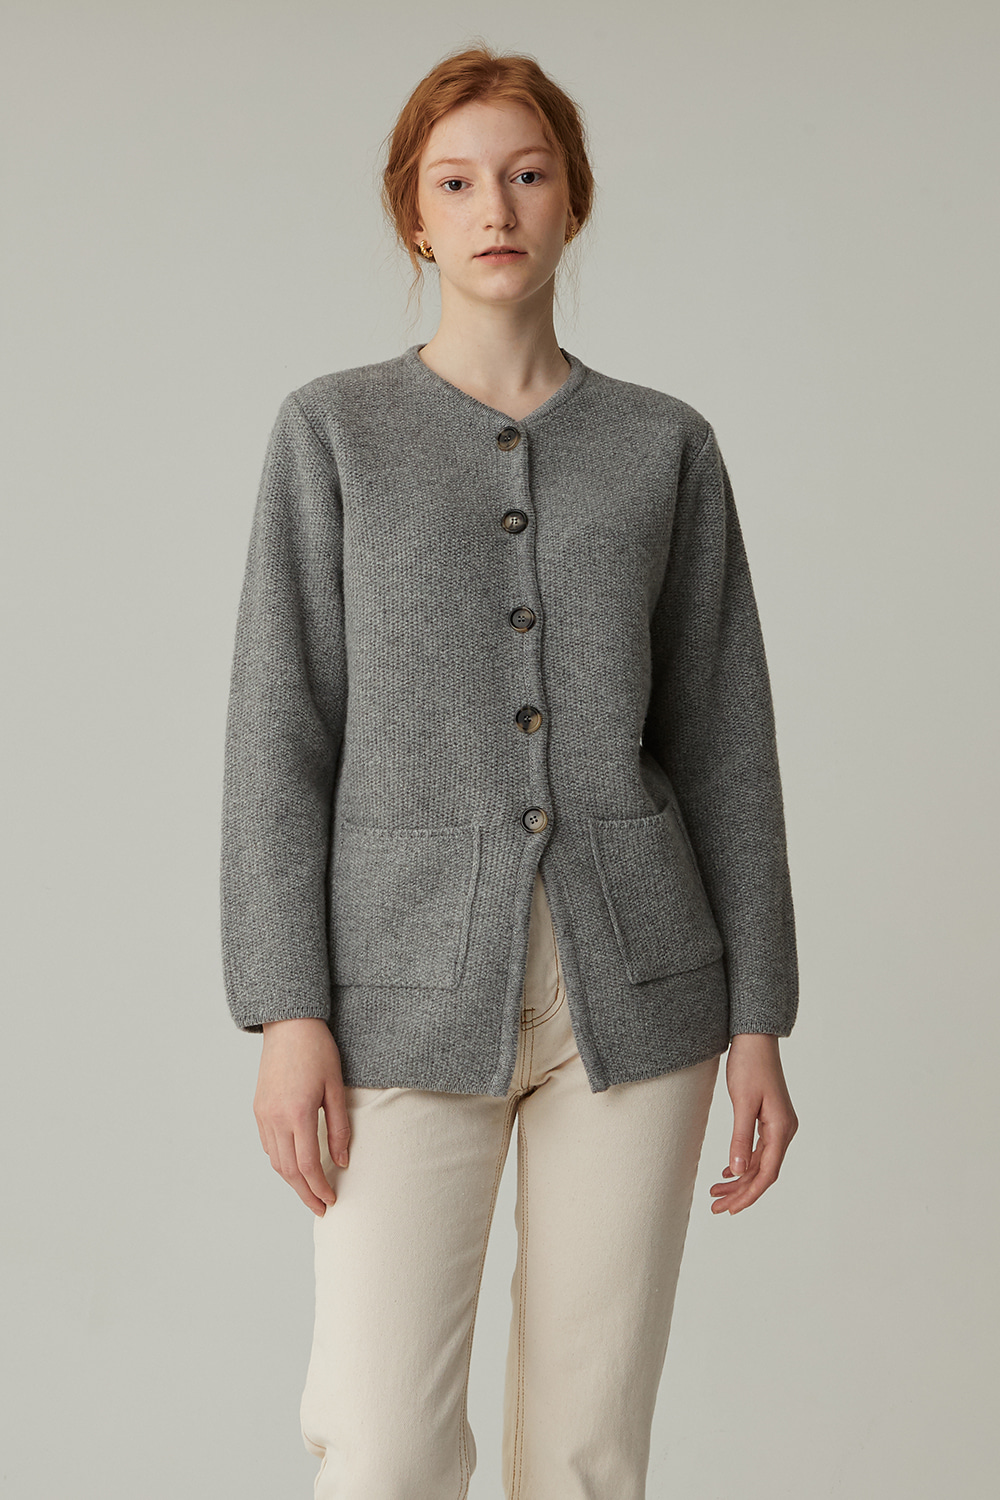 TURK WOOL JACKET(GRAY)